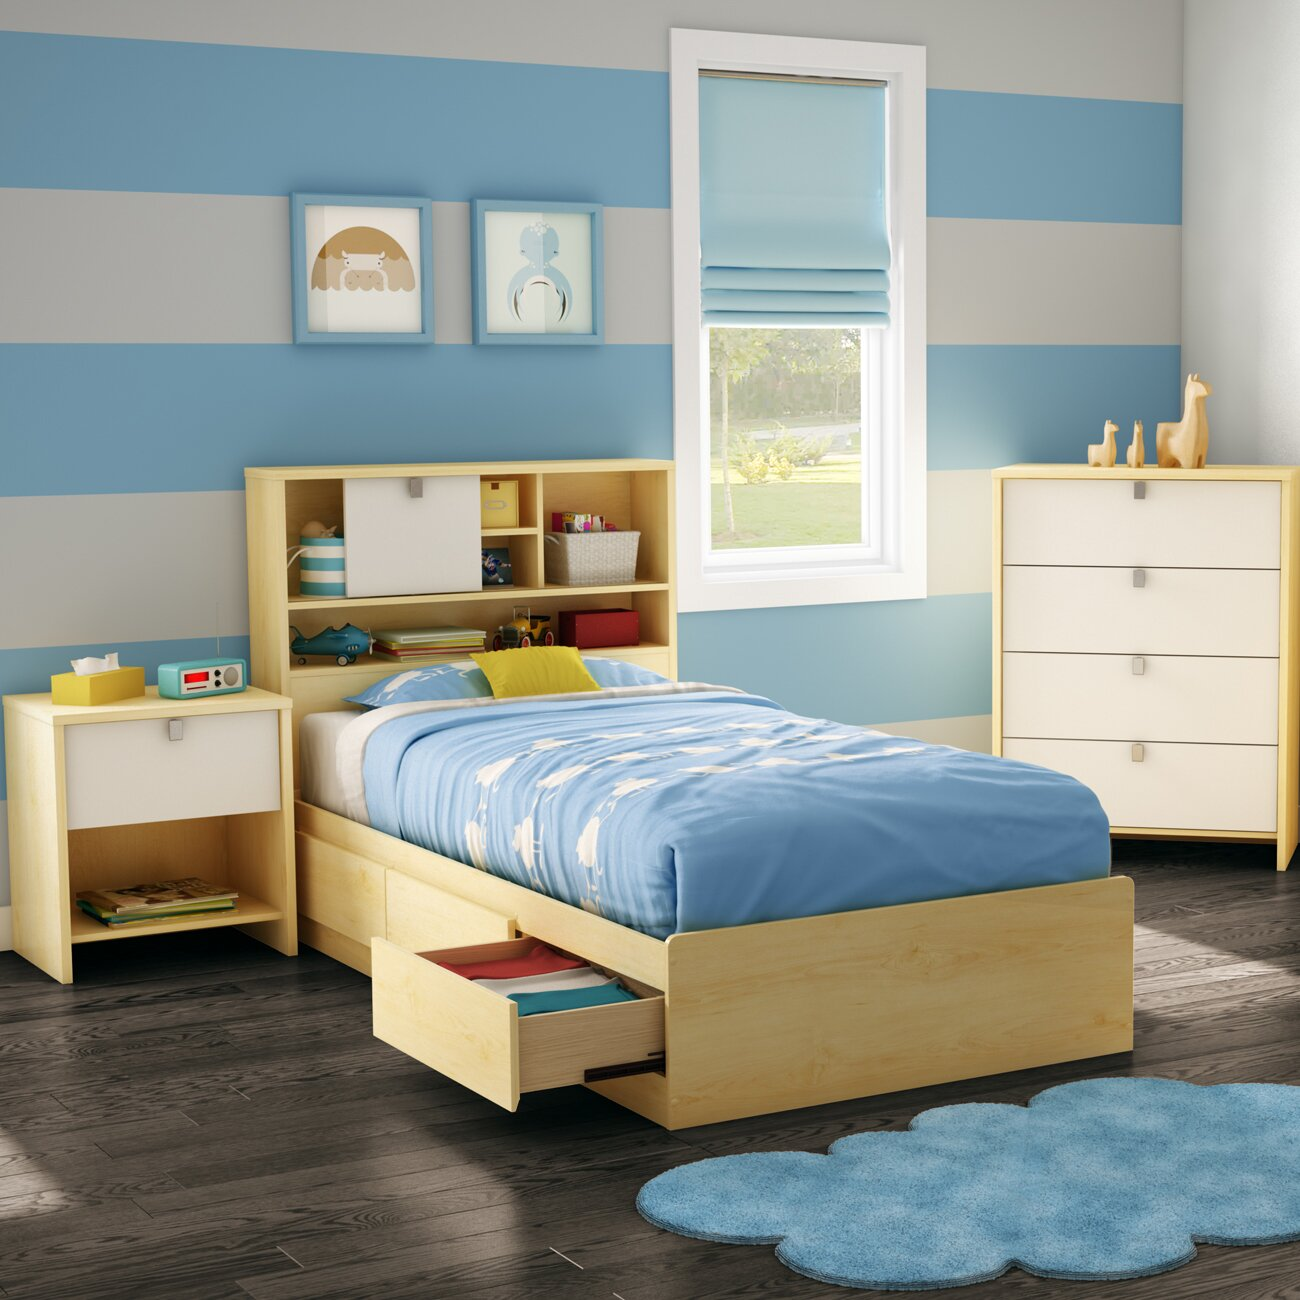 ... Bedroom Furniture ... Standard Kids Bedroom Sets South Shore SKU